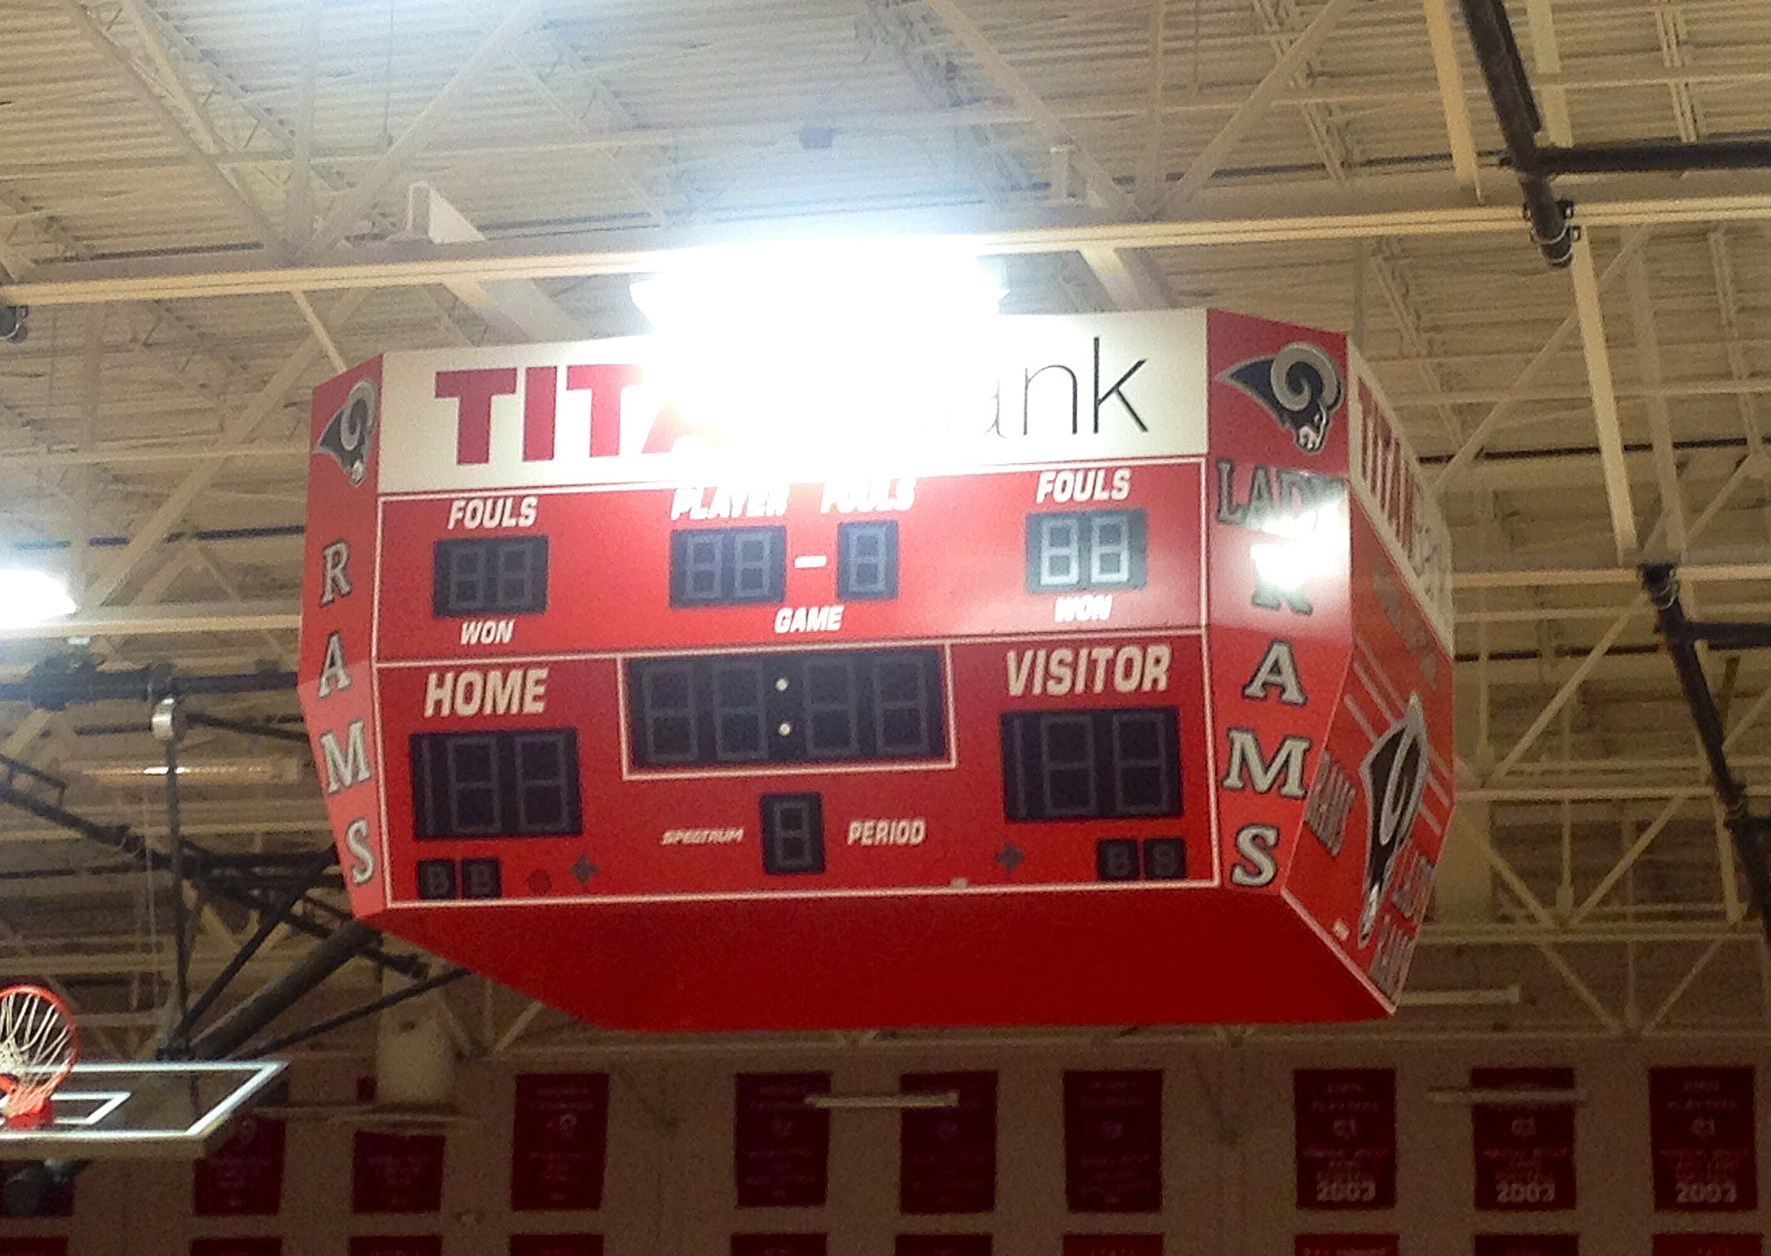 Scoreboard at center court of Main Gym